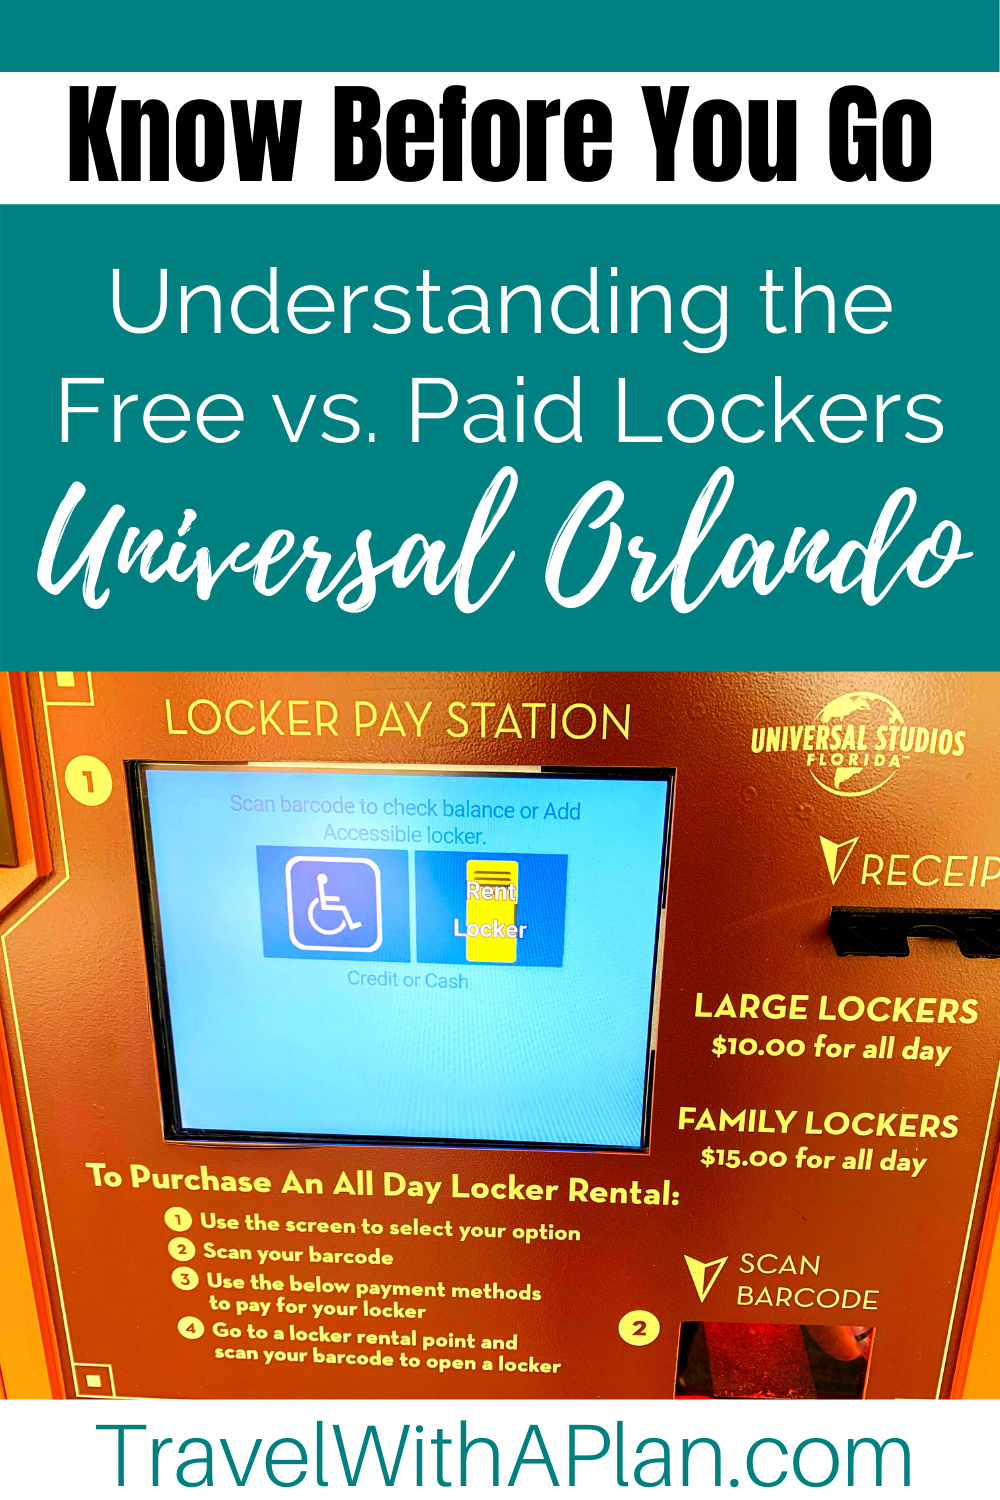 Learn all about the lockers at Universal Orlando from Top U.S. Family Travel Blog, Travel With A Plan!  Click here now!